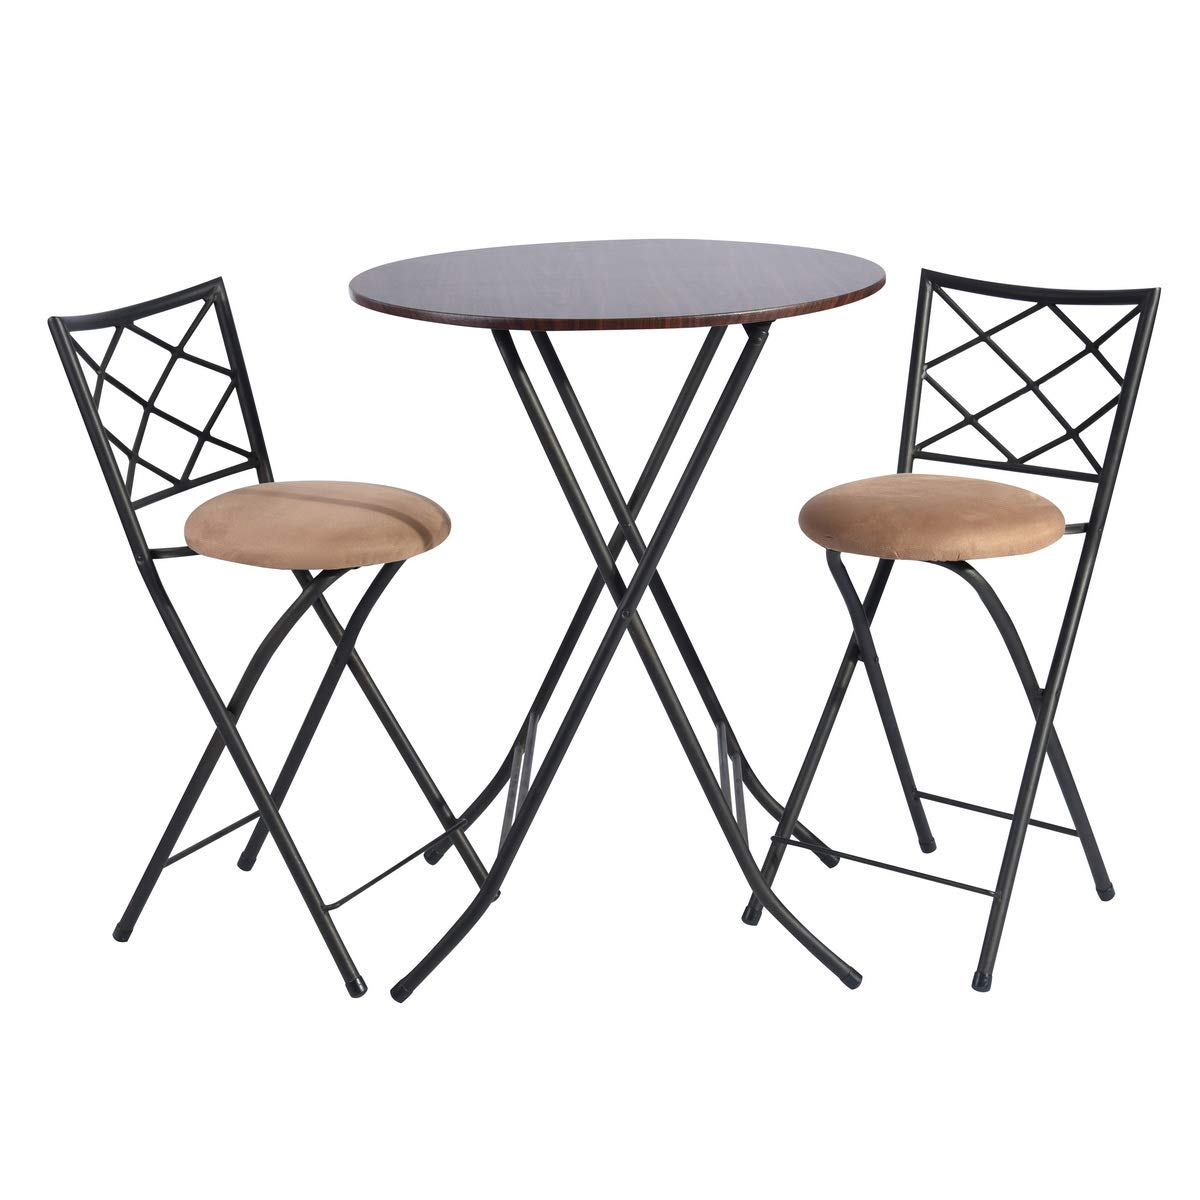 Framodo 3 Piece Folding Counter Height Pub Dining Table Set, No-Assembly Round High Breakfast Table with 2 Cushioned Folding Bar Stool Chairs by Framodo